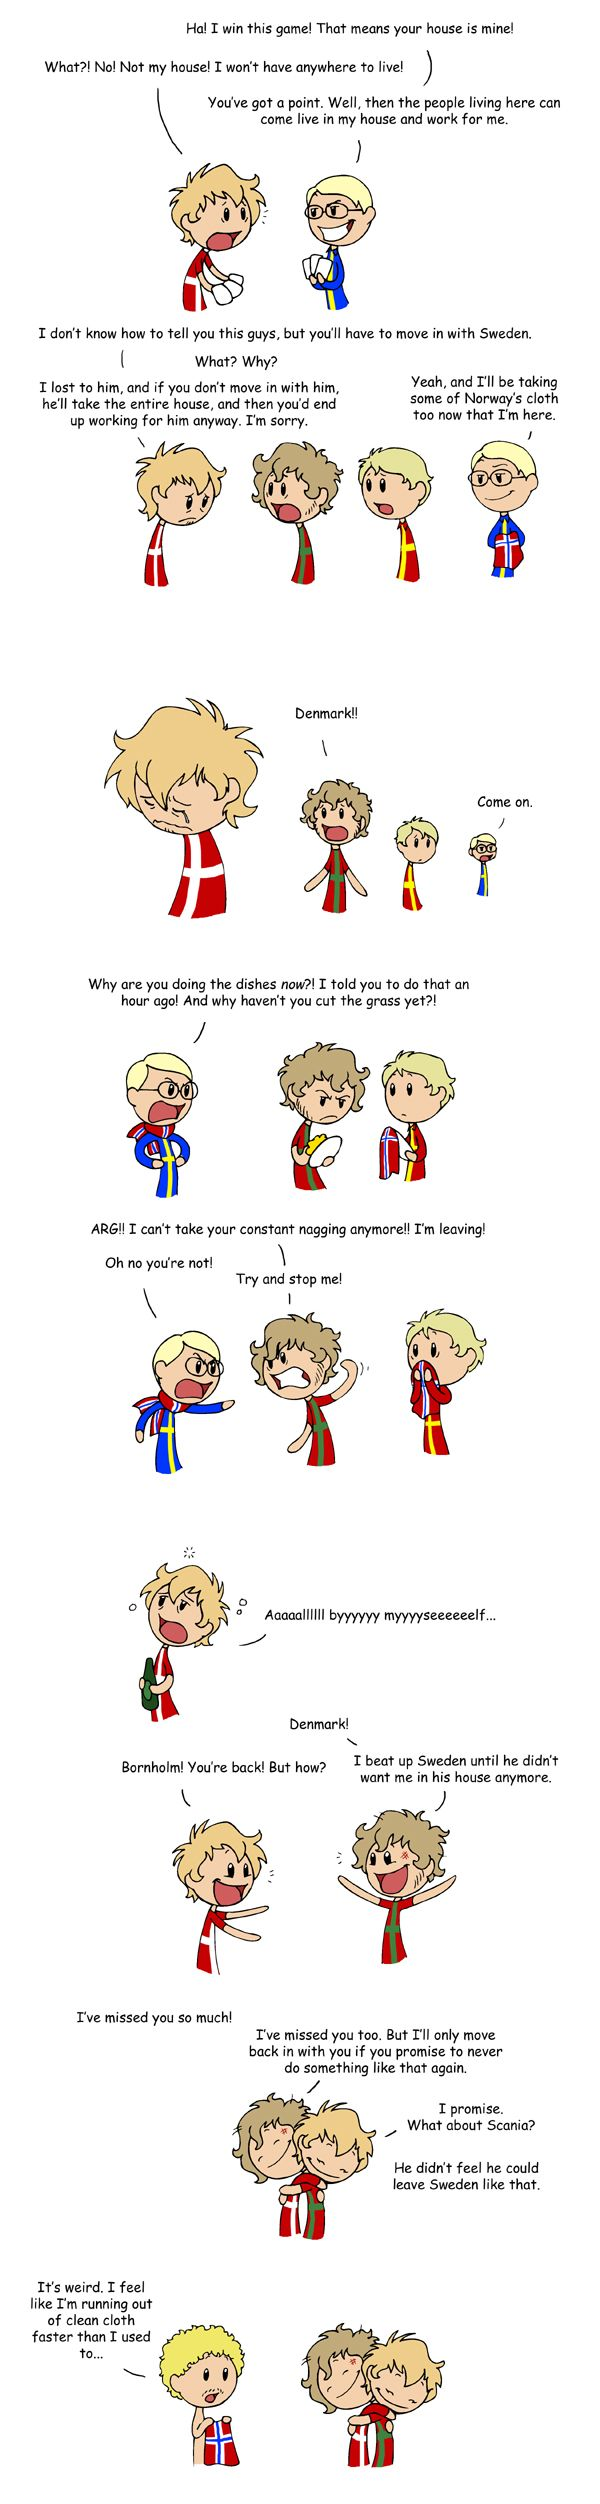 The Love Story of Bornholm. The story behind this comic is that Sweden once defeated Denmark, and the Danish king had to give up most of Denmark and parts of Norway